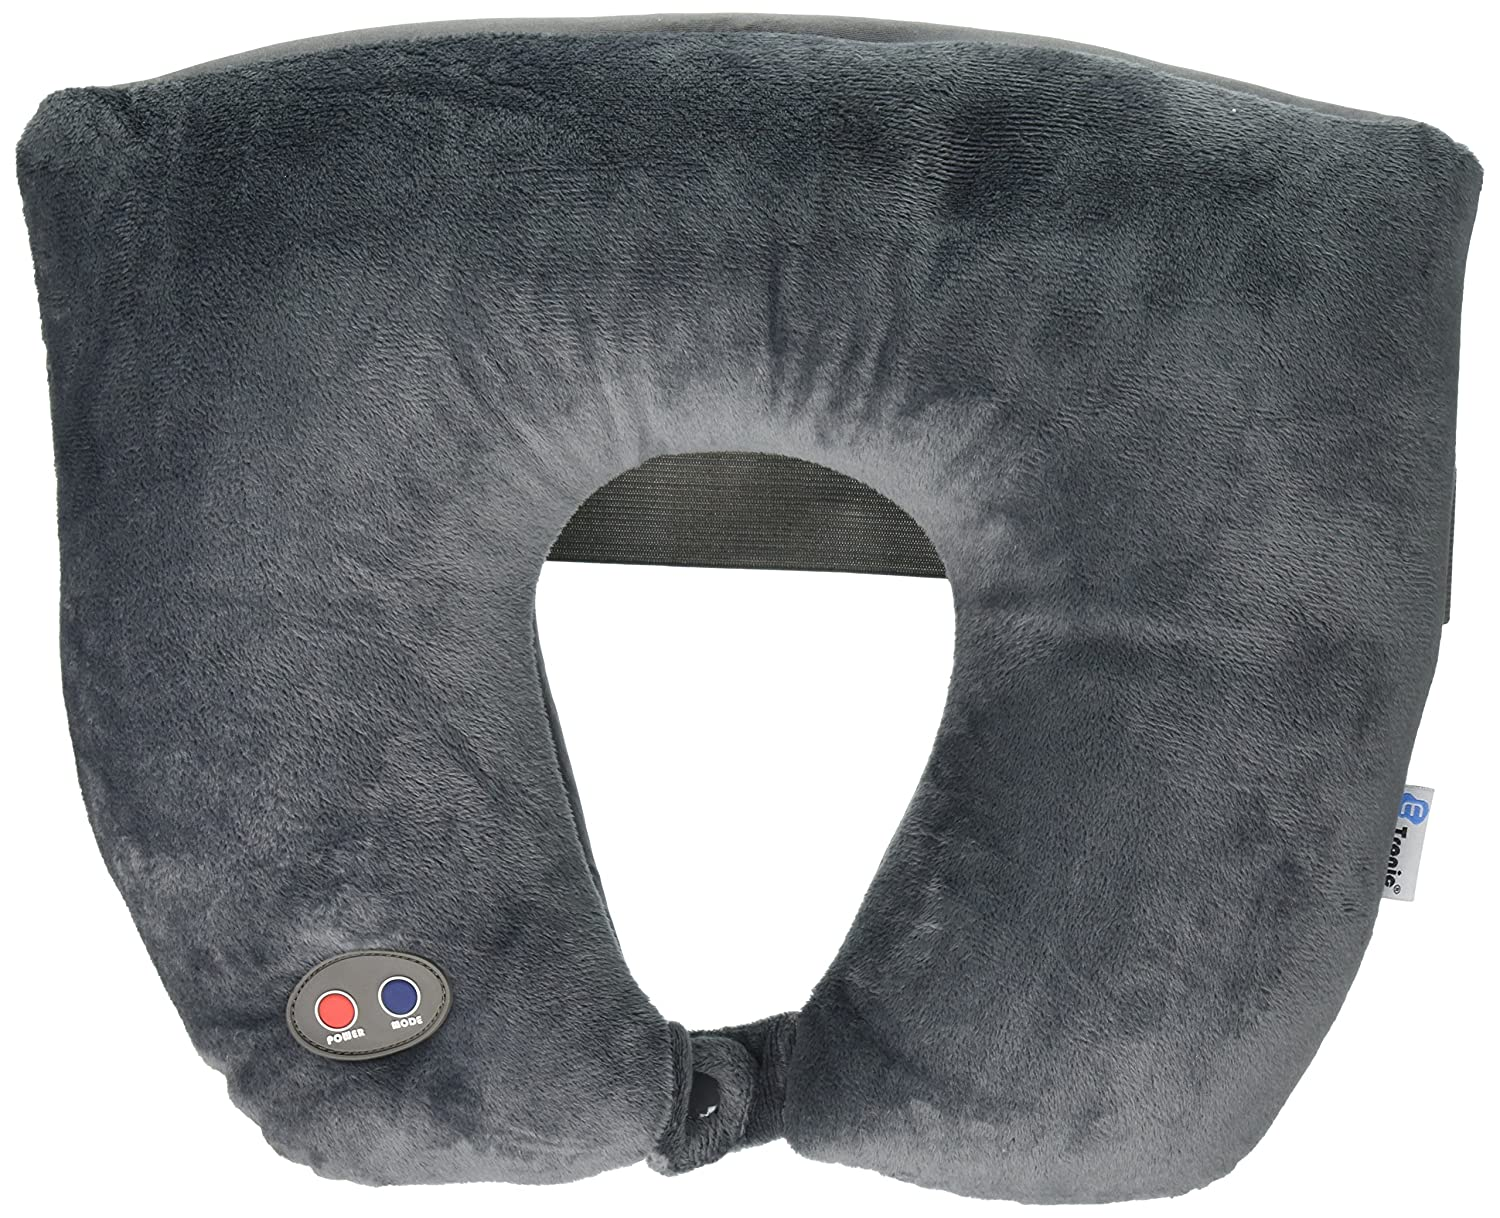 Best Massage Pillow By Etronic Ultra Comfort ET-200